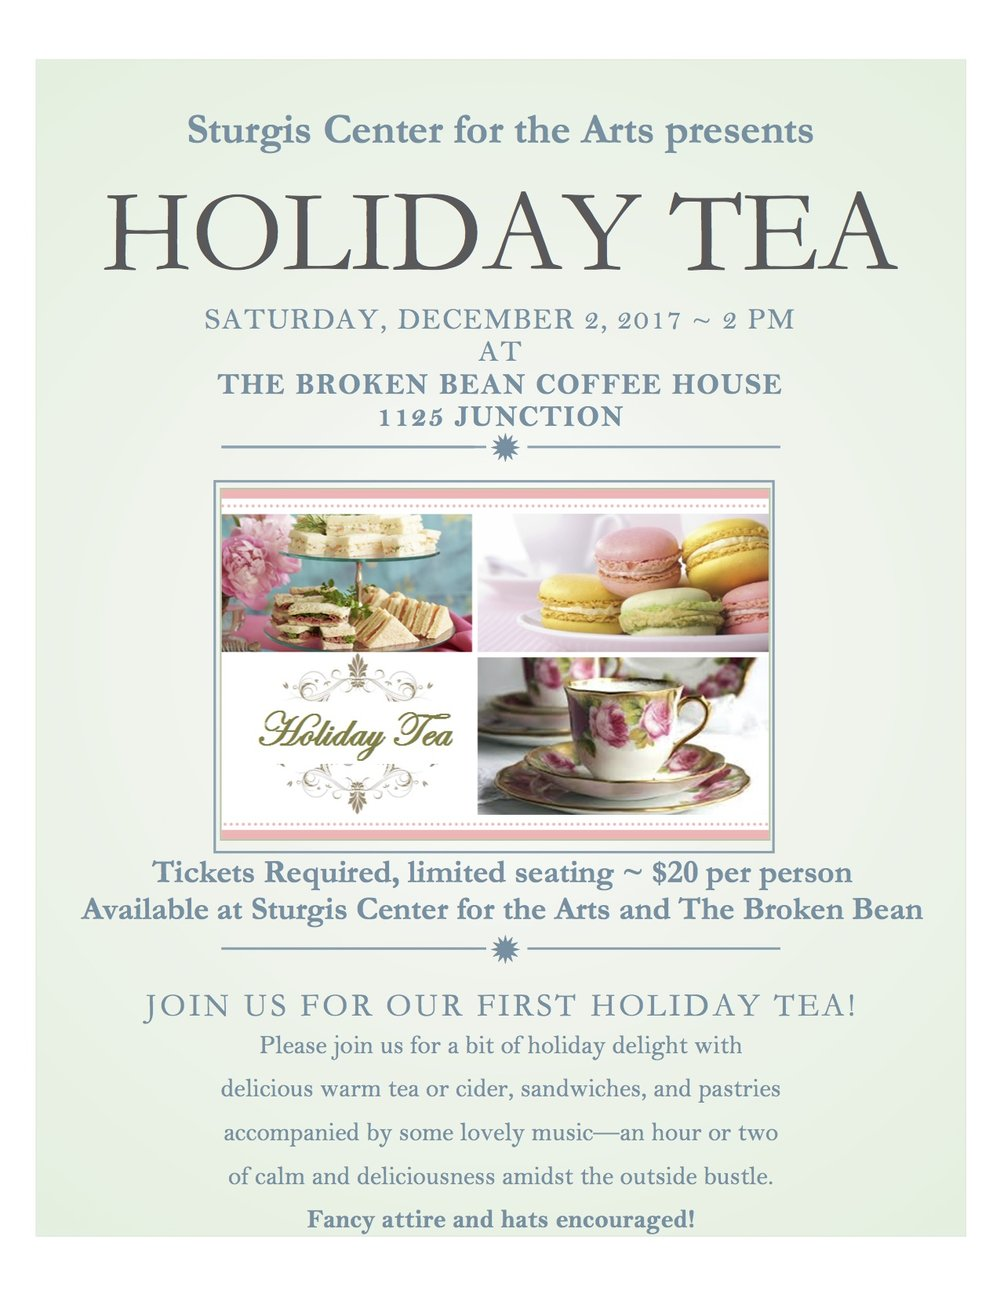 Holiday Tea Flyer.jpg